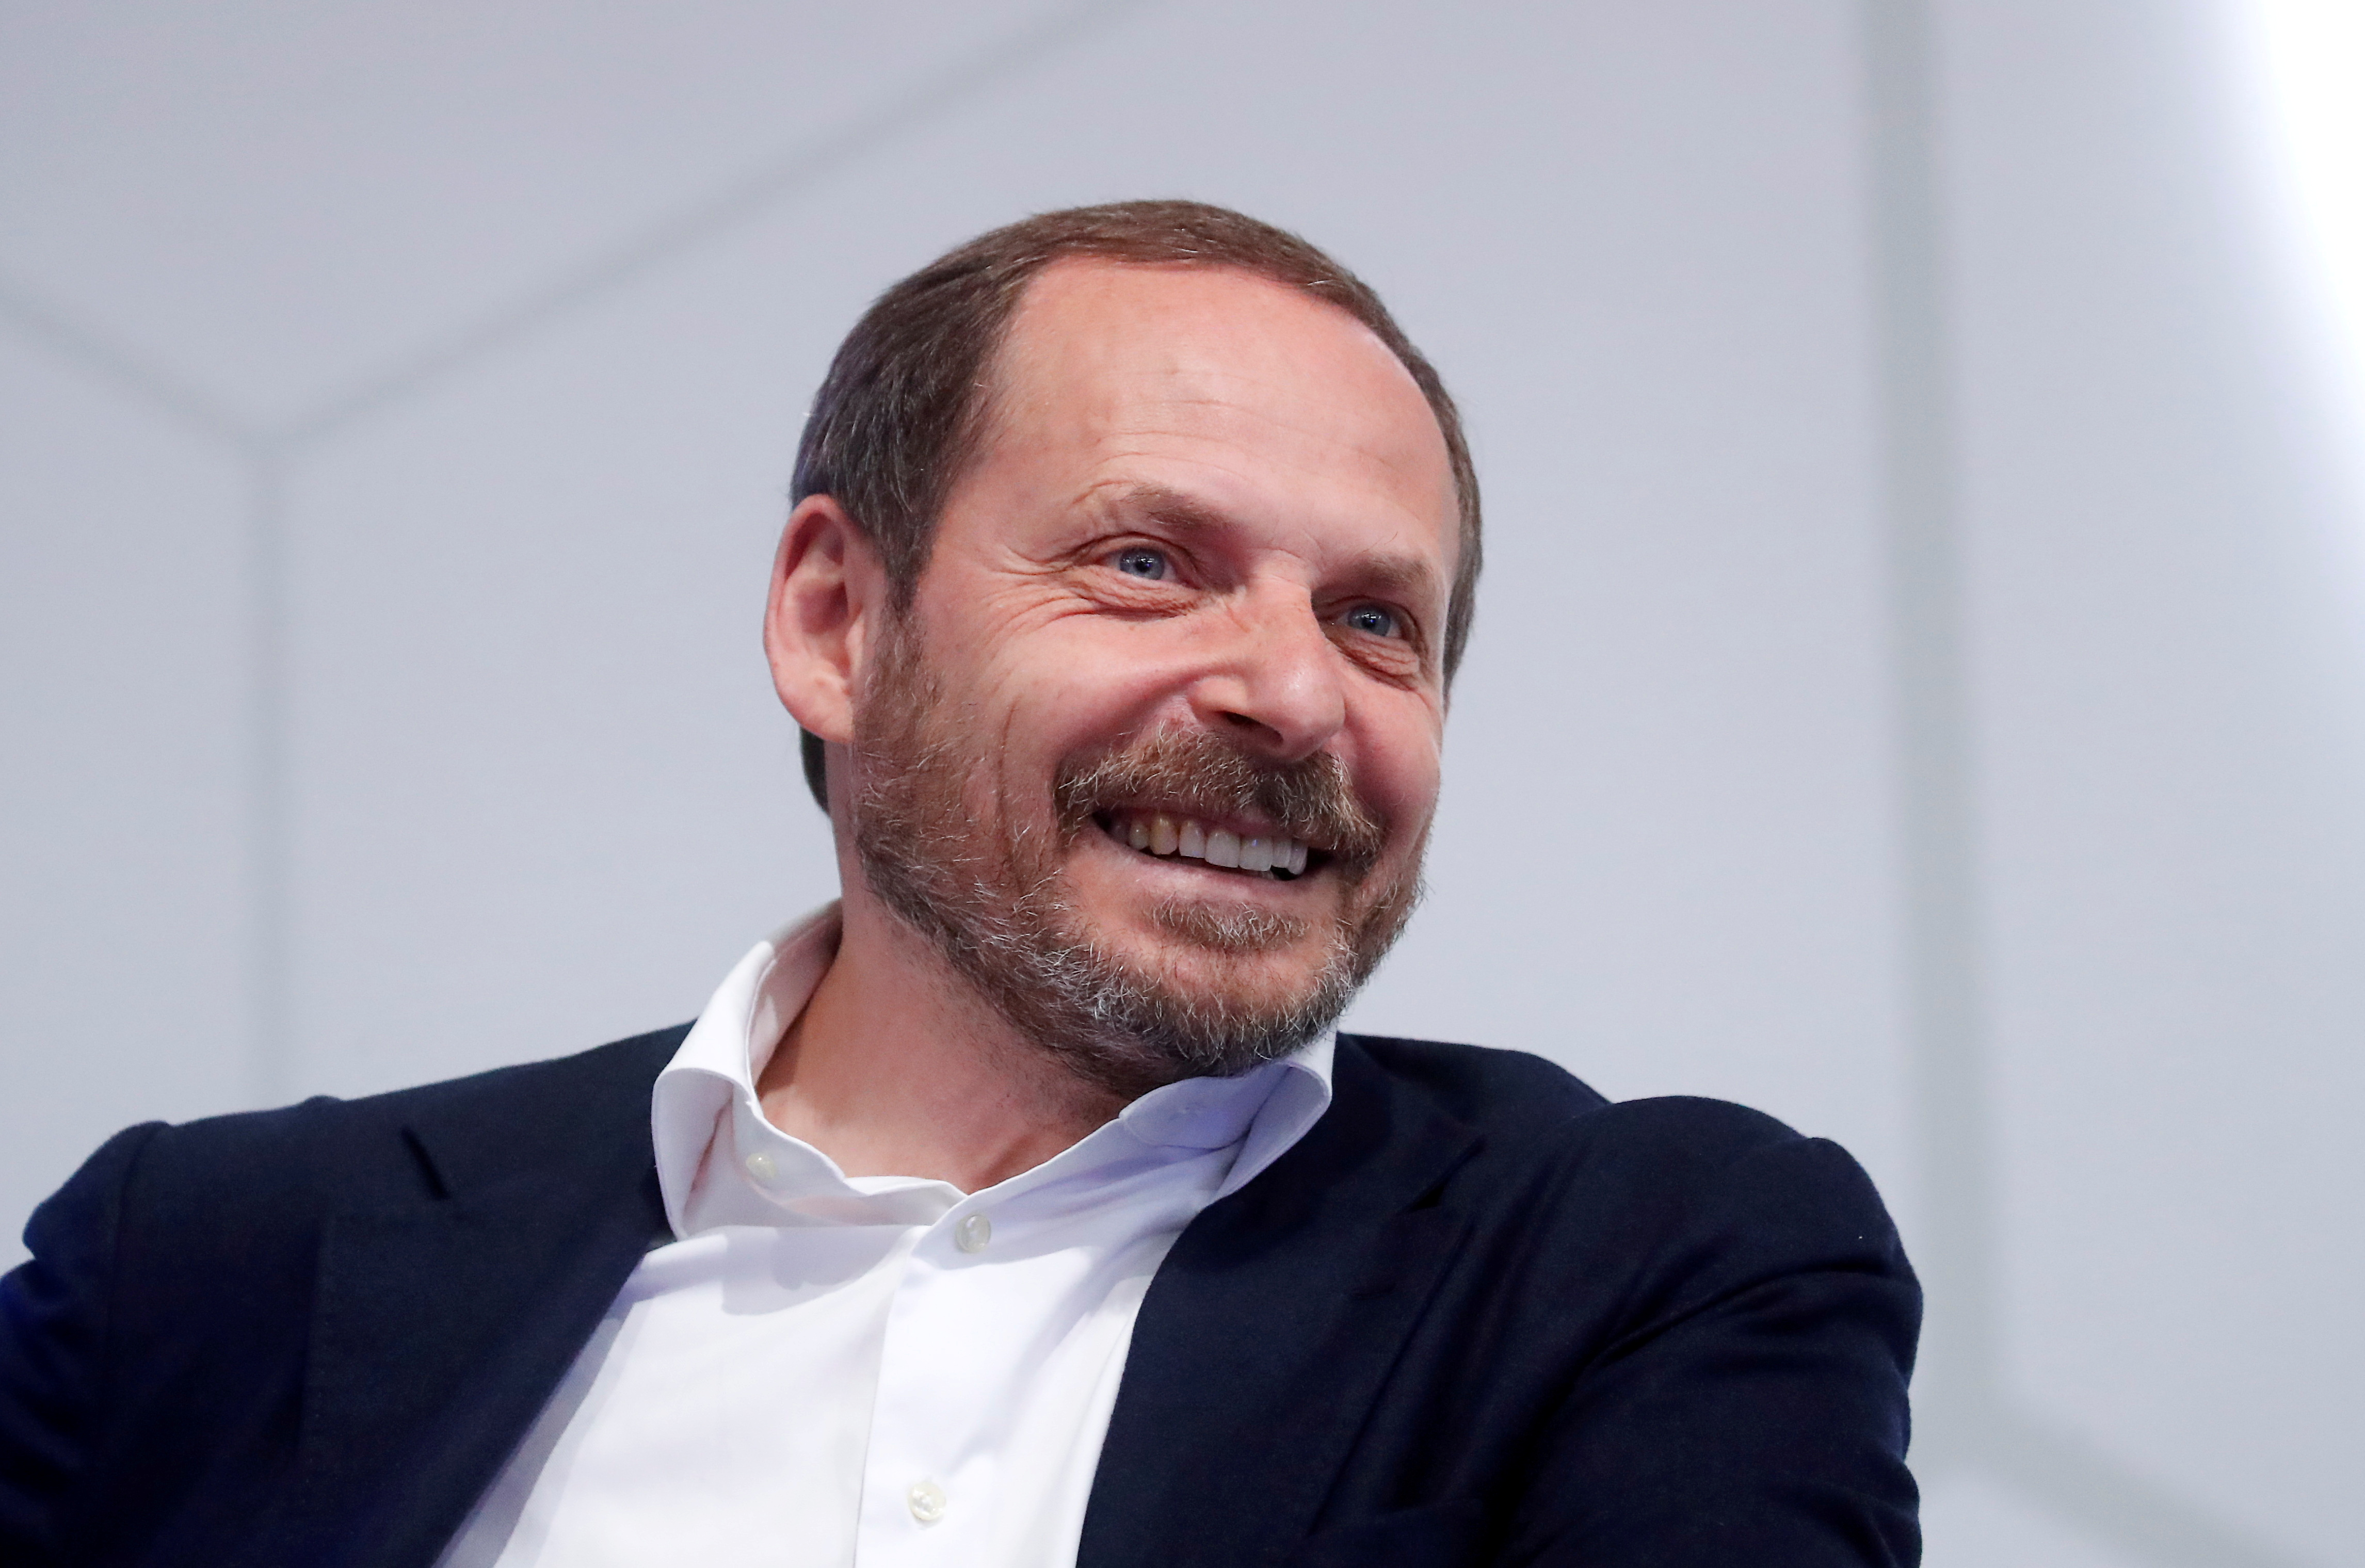 Arkady Volozh, Co-Founder and Chief Executive Officer of Yandex Group of Companies, attends a session of the St. Petersburg International Economic Forum (SPIEF), Russia June 7, 2019. REUTERS/Maxim Shemetov/File Photo